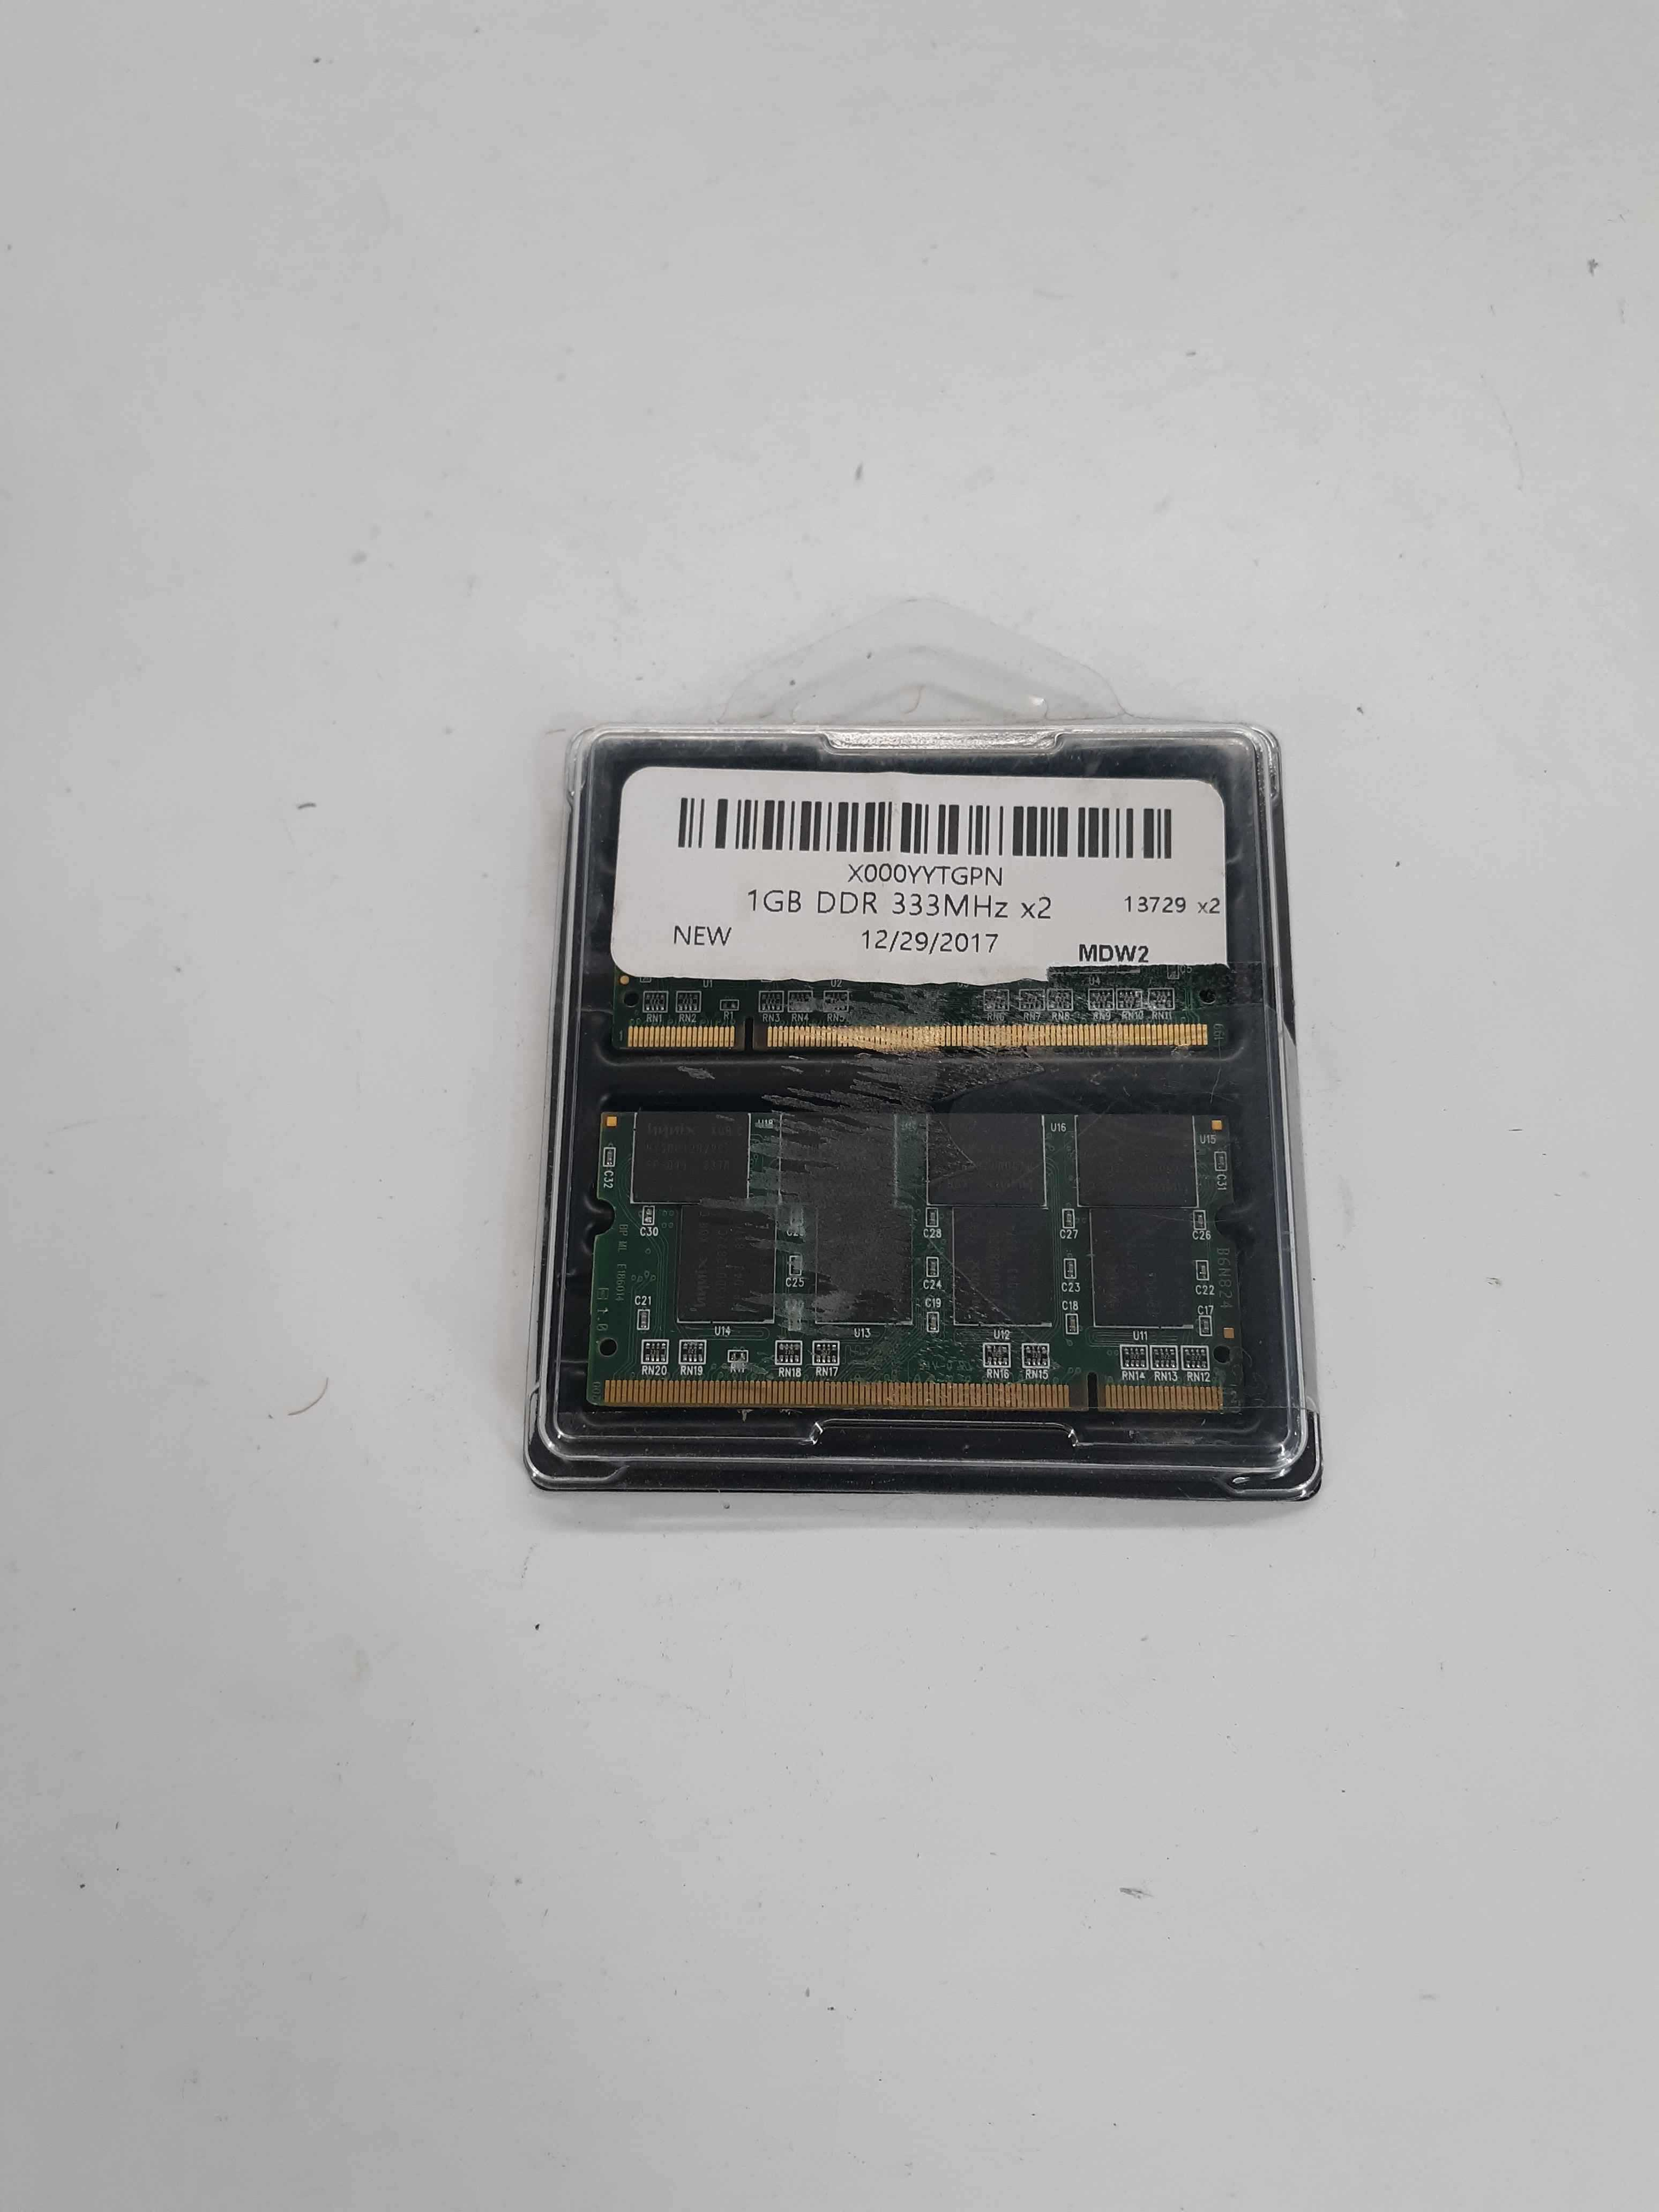 1GB DDR DIMM 333 MHz PC 2700 / 1GB DDR 333MHz x2 Laptop Notebook Memory